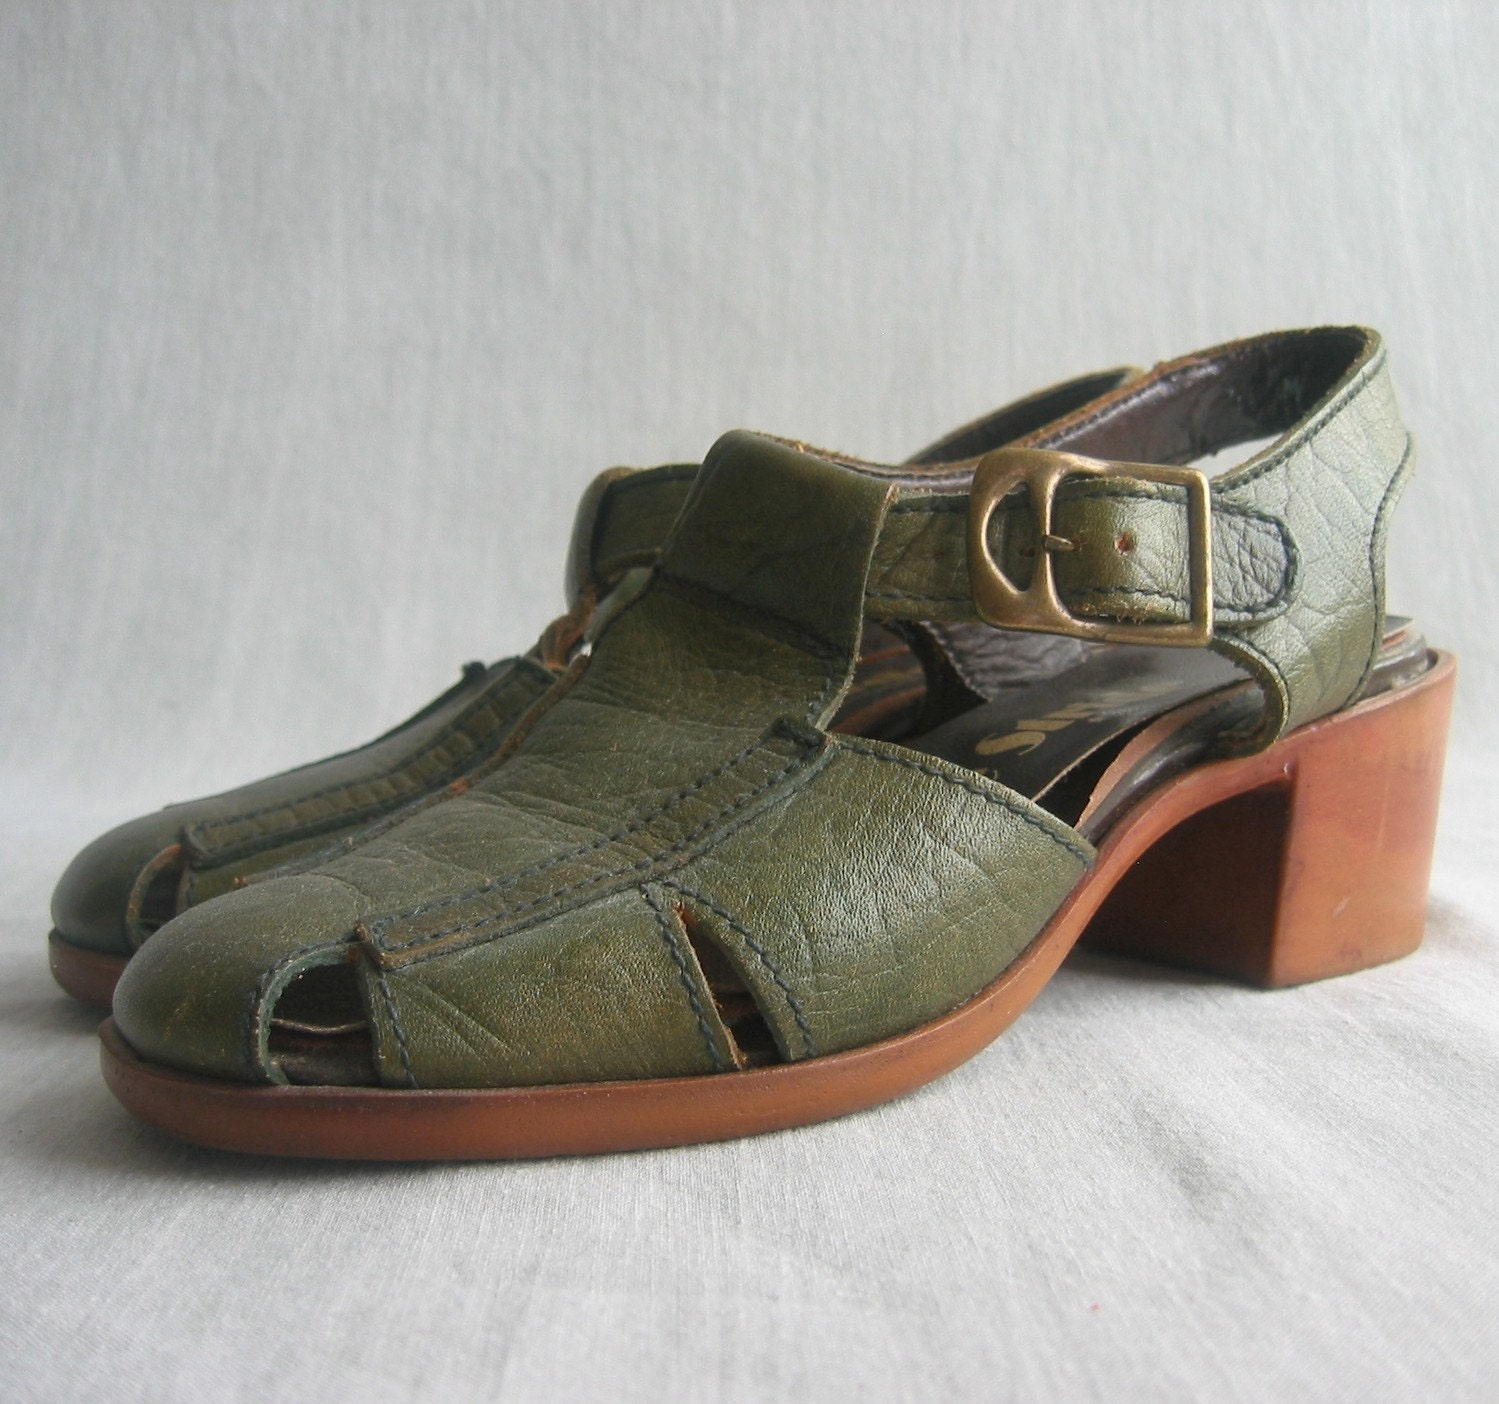 Vintage Avocado Buckle Sandals